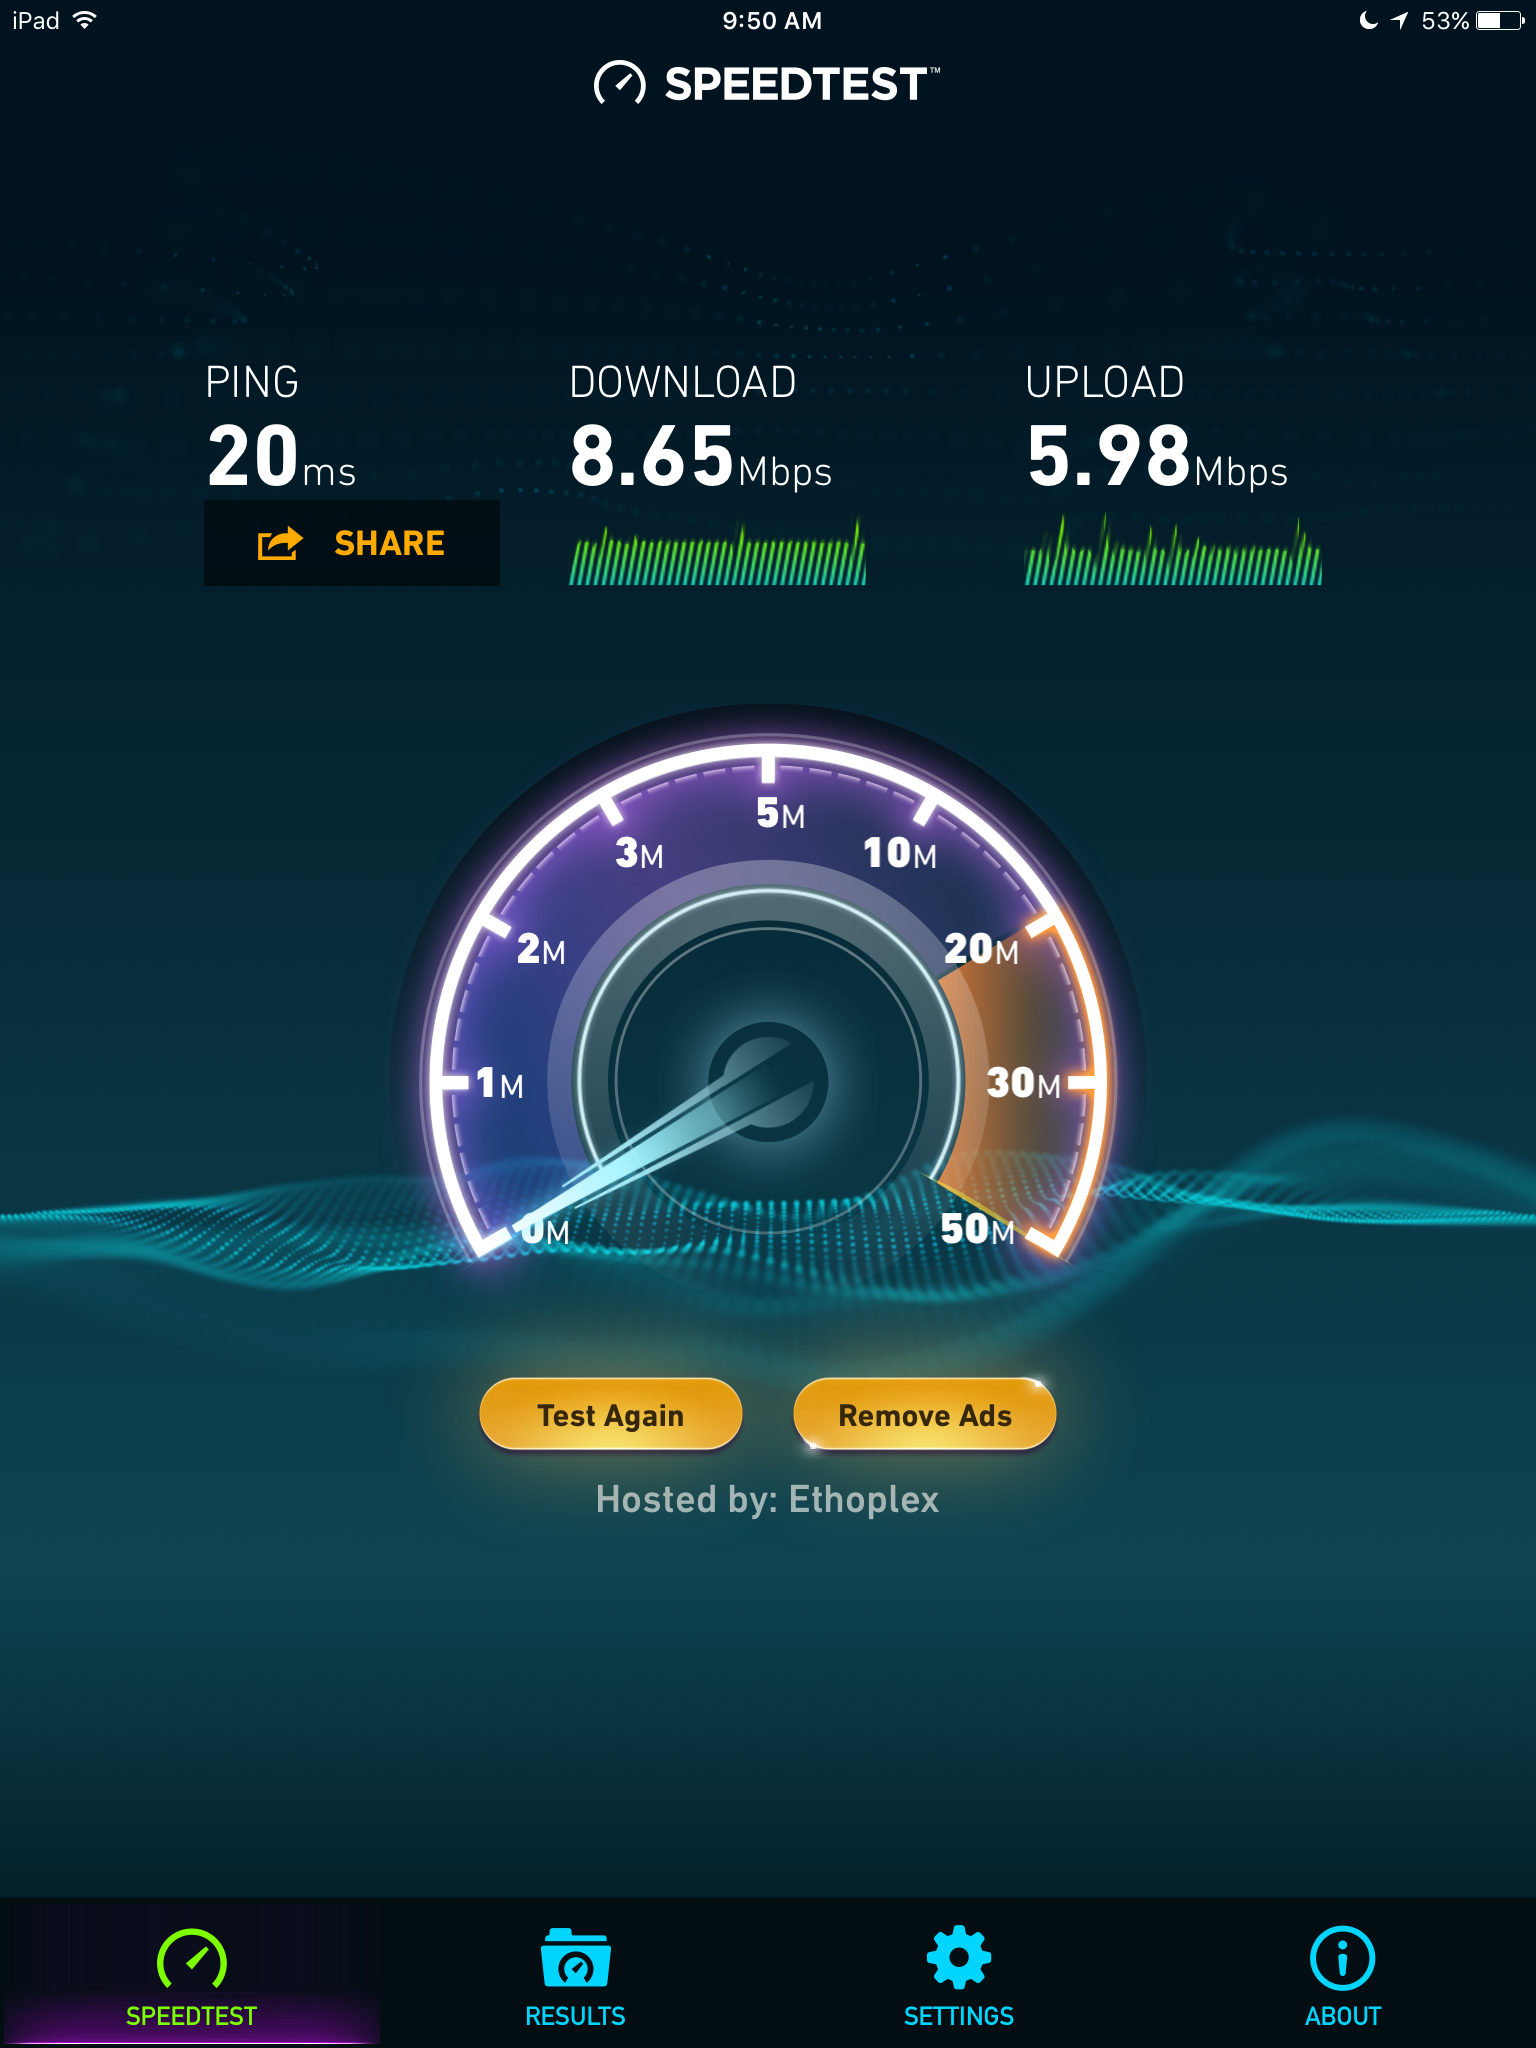 Just got faster internet but wifi router still gives slow